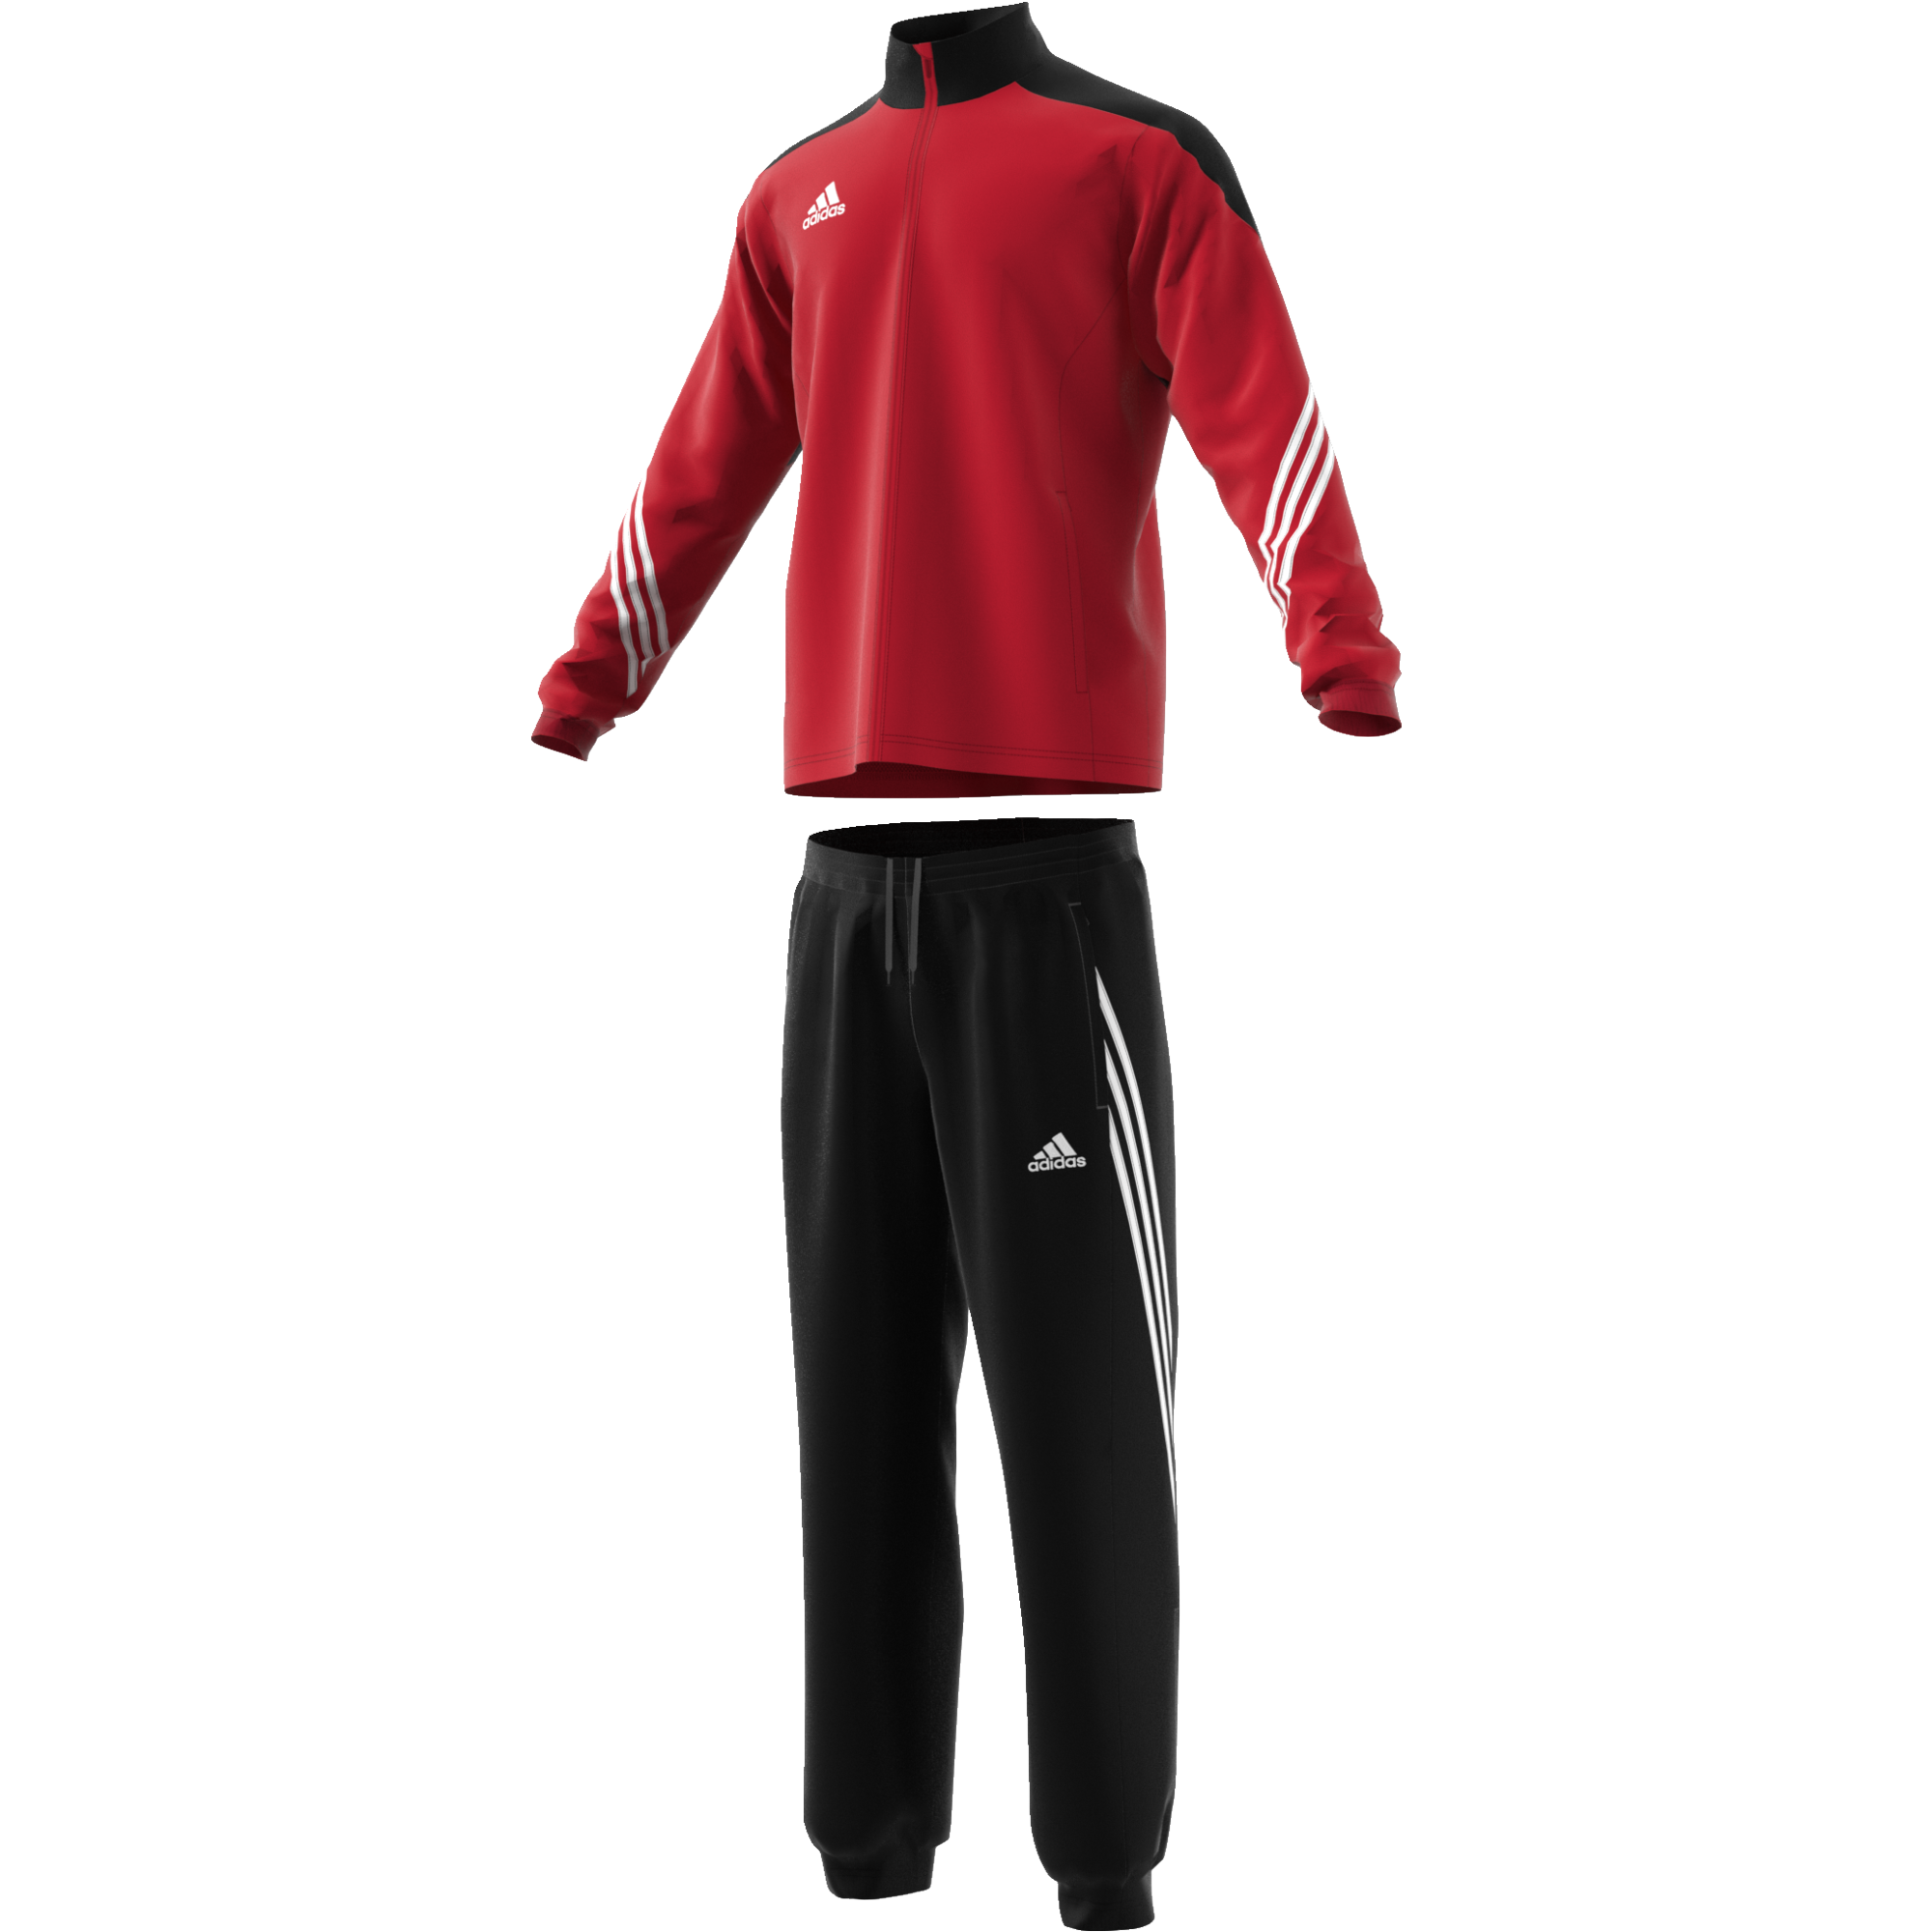 St Michael's on Wyre Primary School Adidas Red Presentation Tracksuit